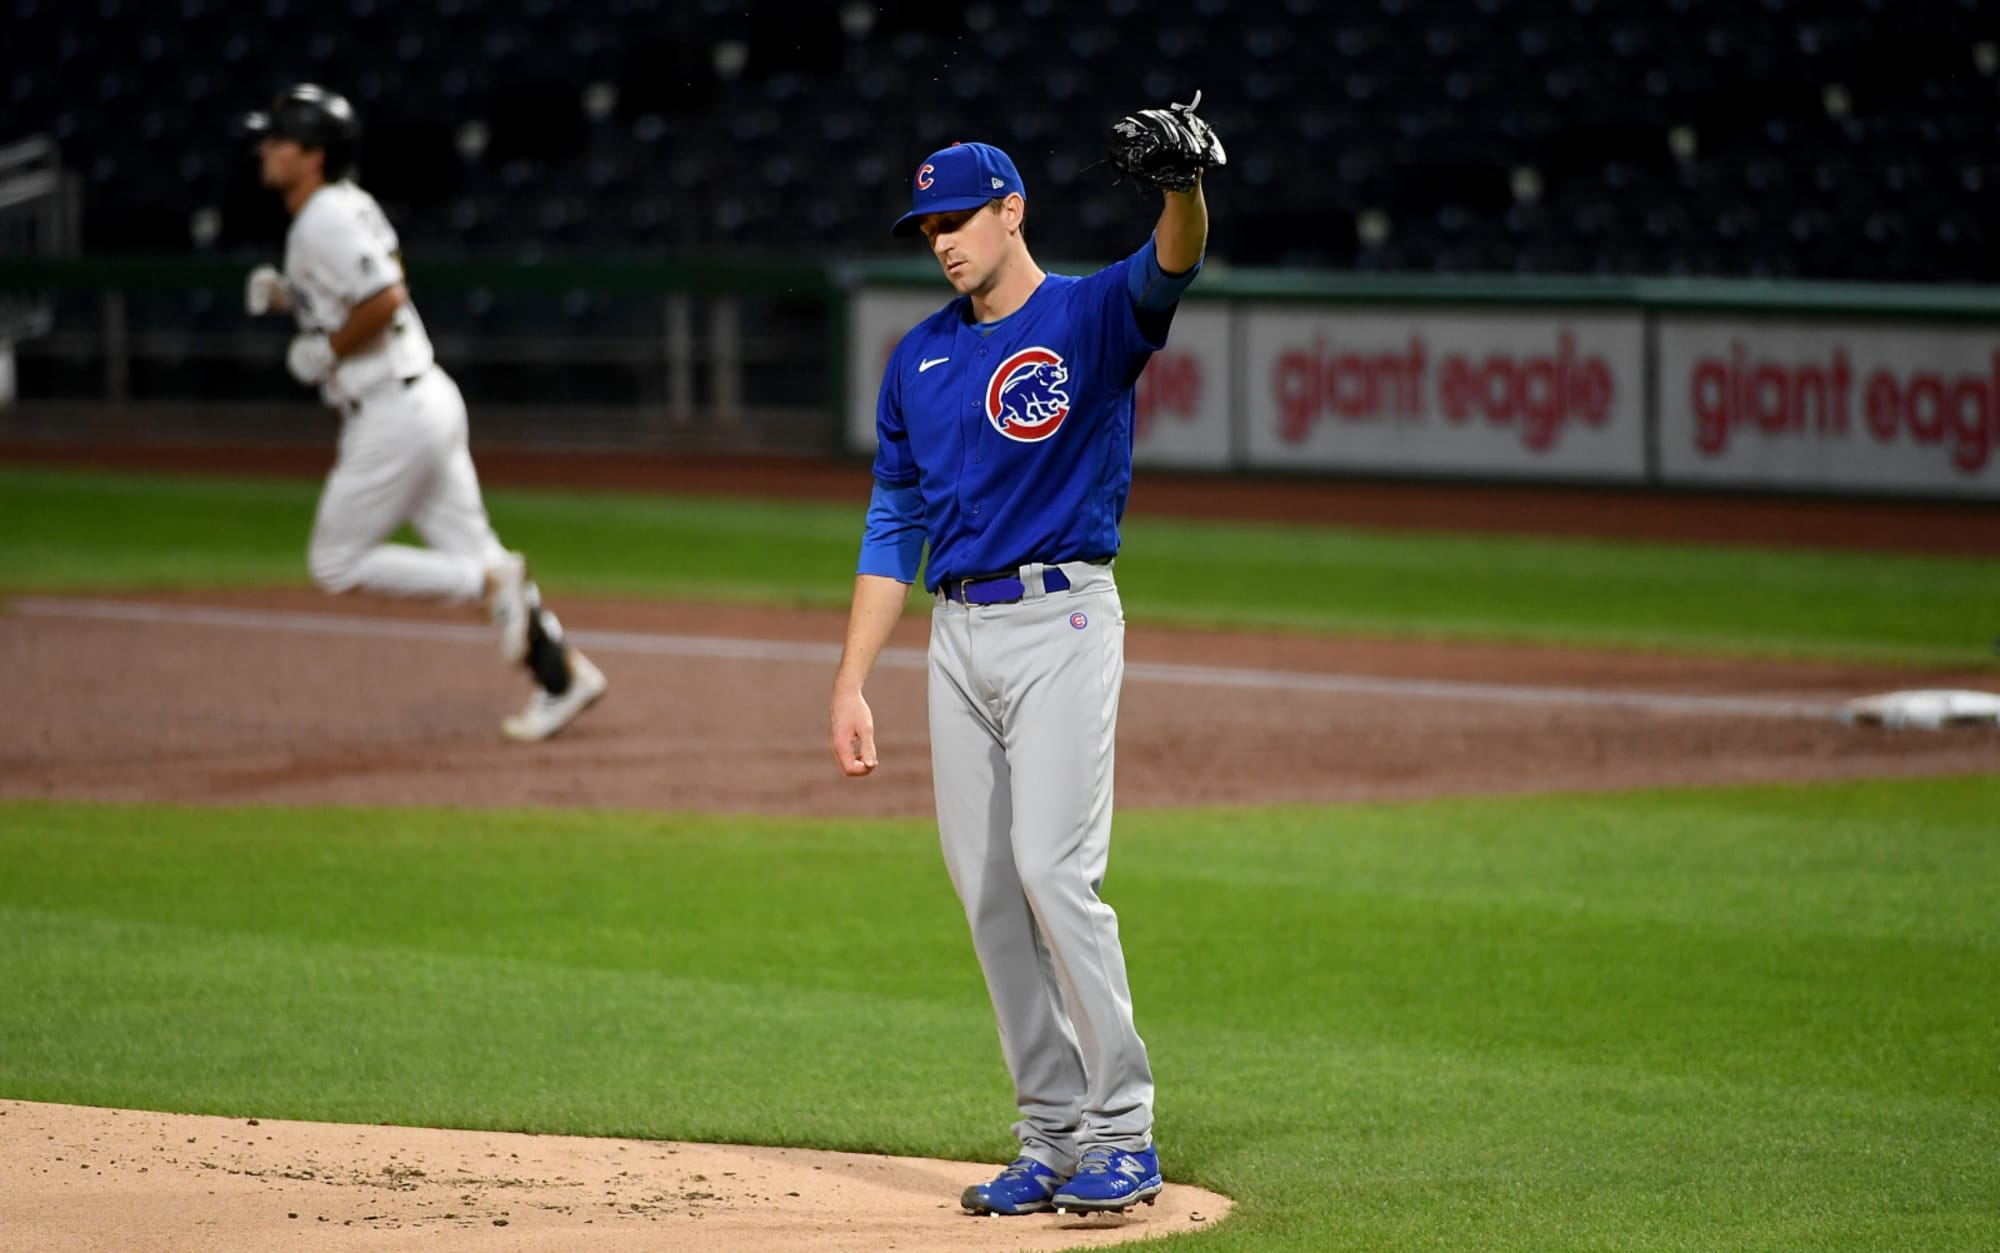 Cubs heading in wrong direction as postseason approaches